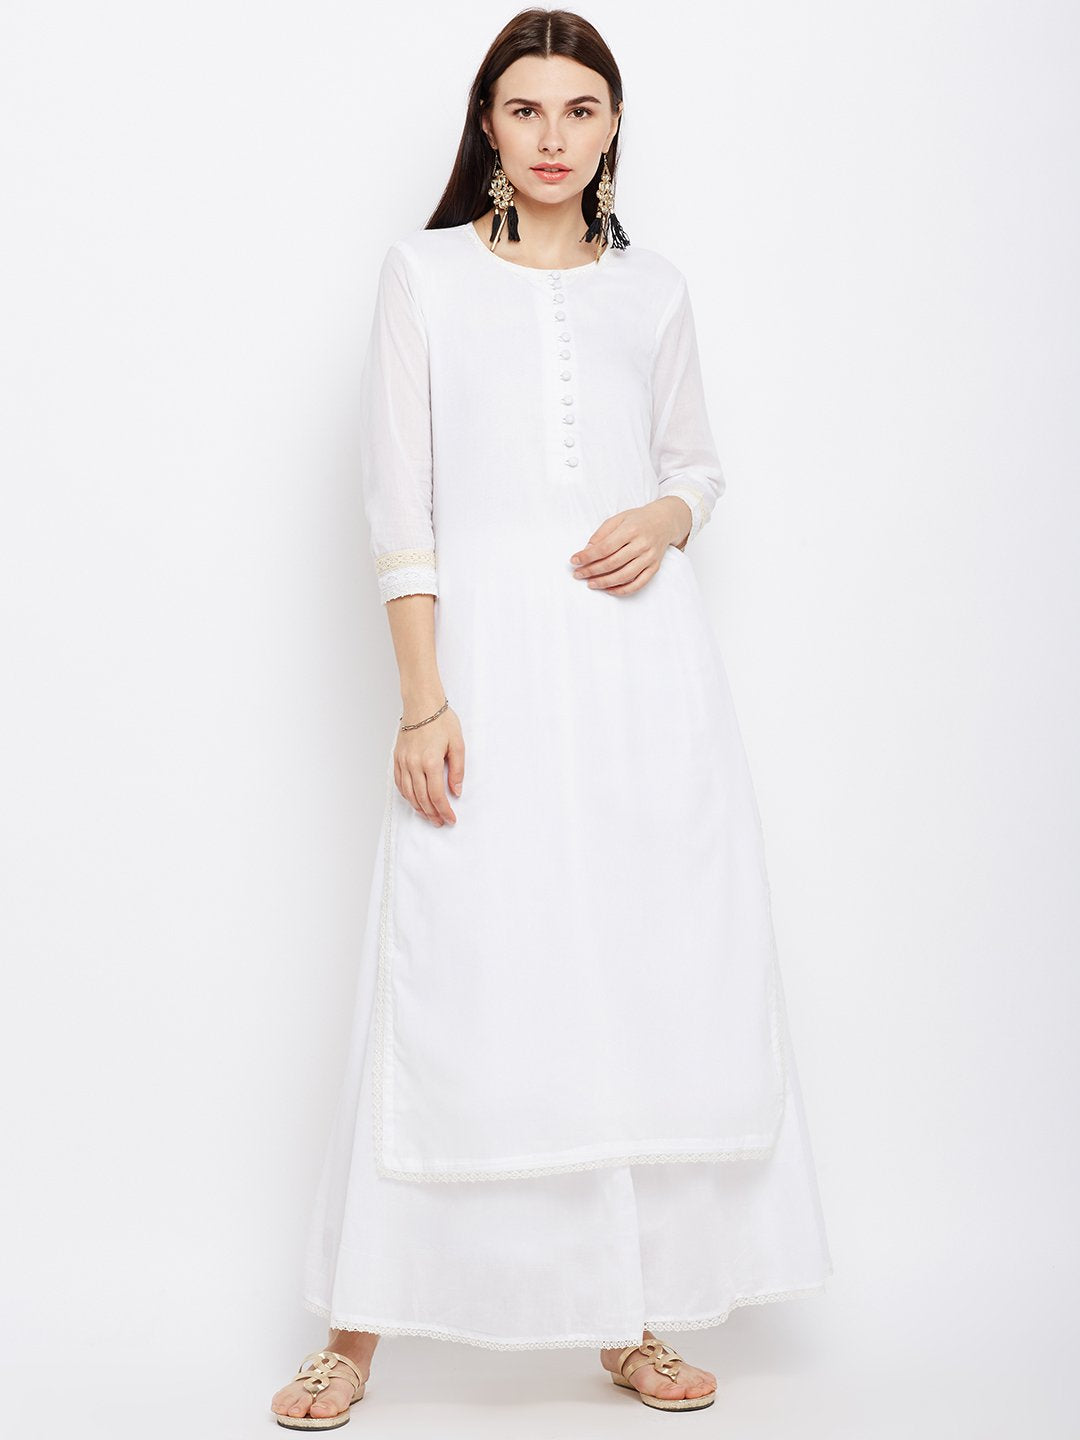 Offwhite Kurta Skirt Set with Lace Inserts